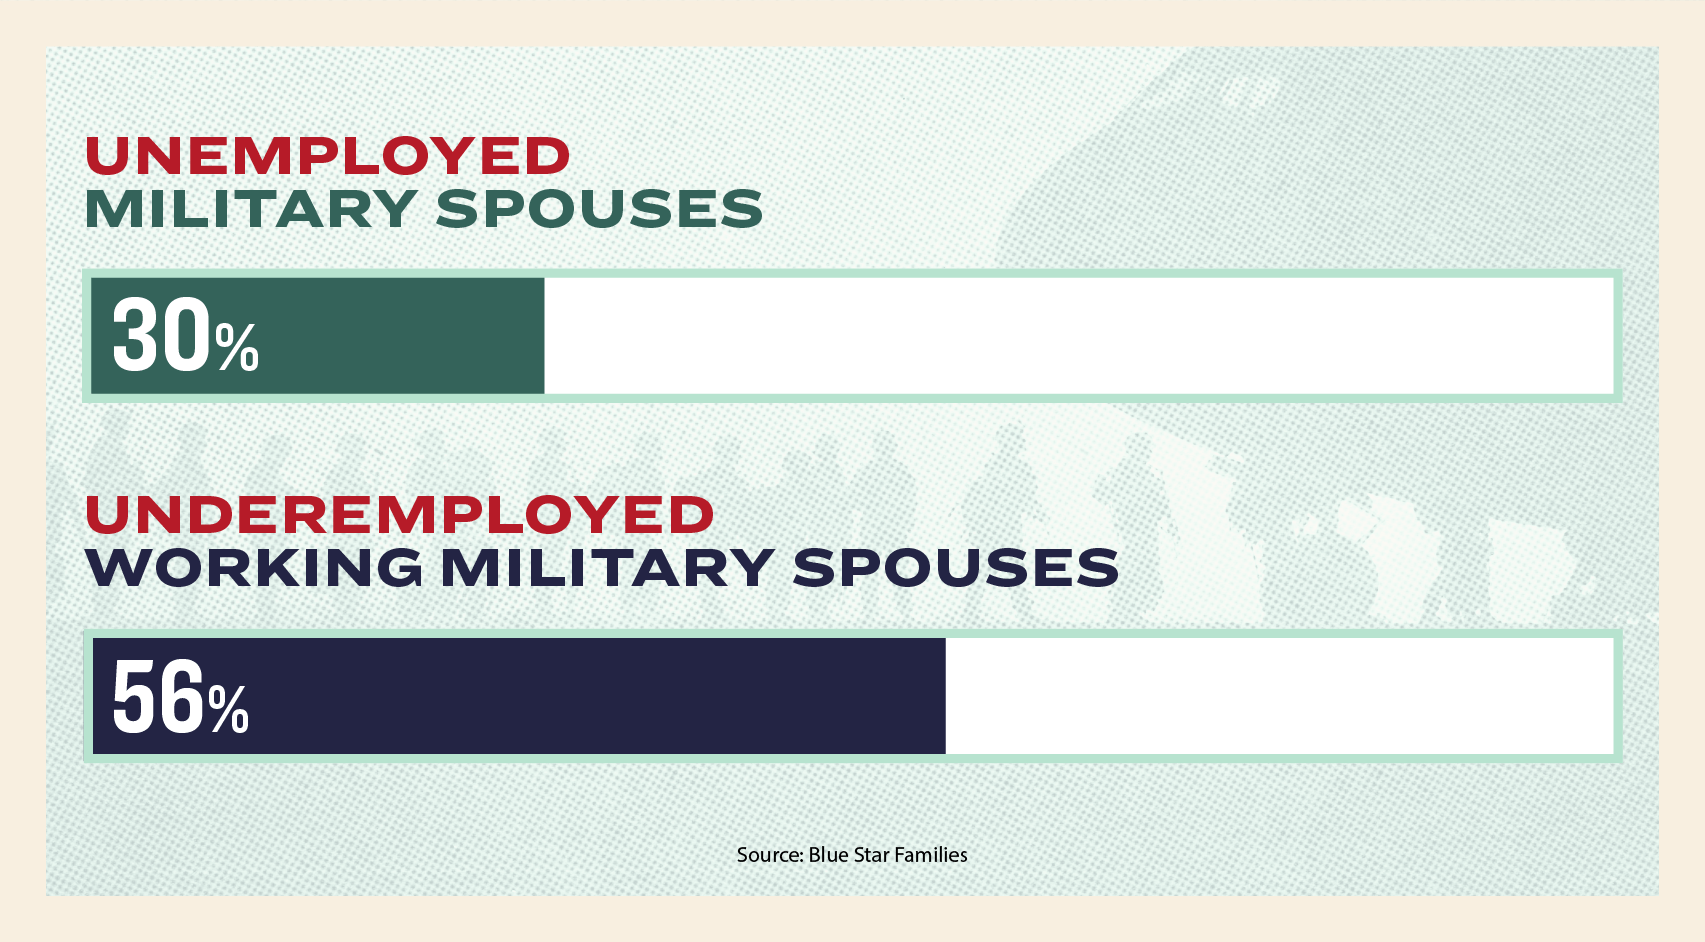 Bar graph that shows 30% of military spouses are unemployed and 56% of working military spouses are unemployed.